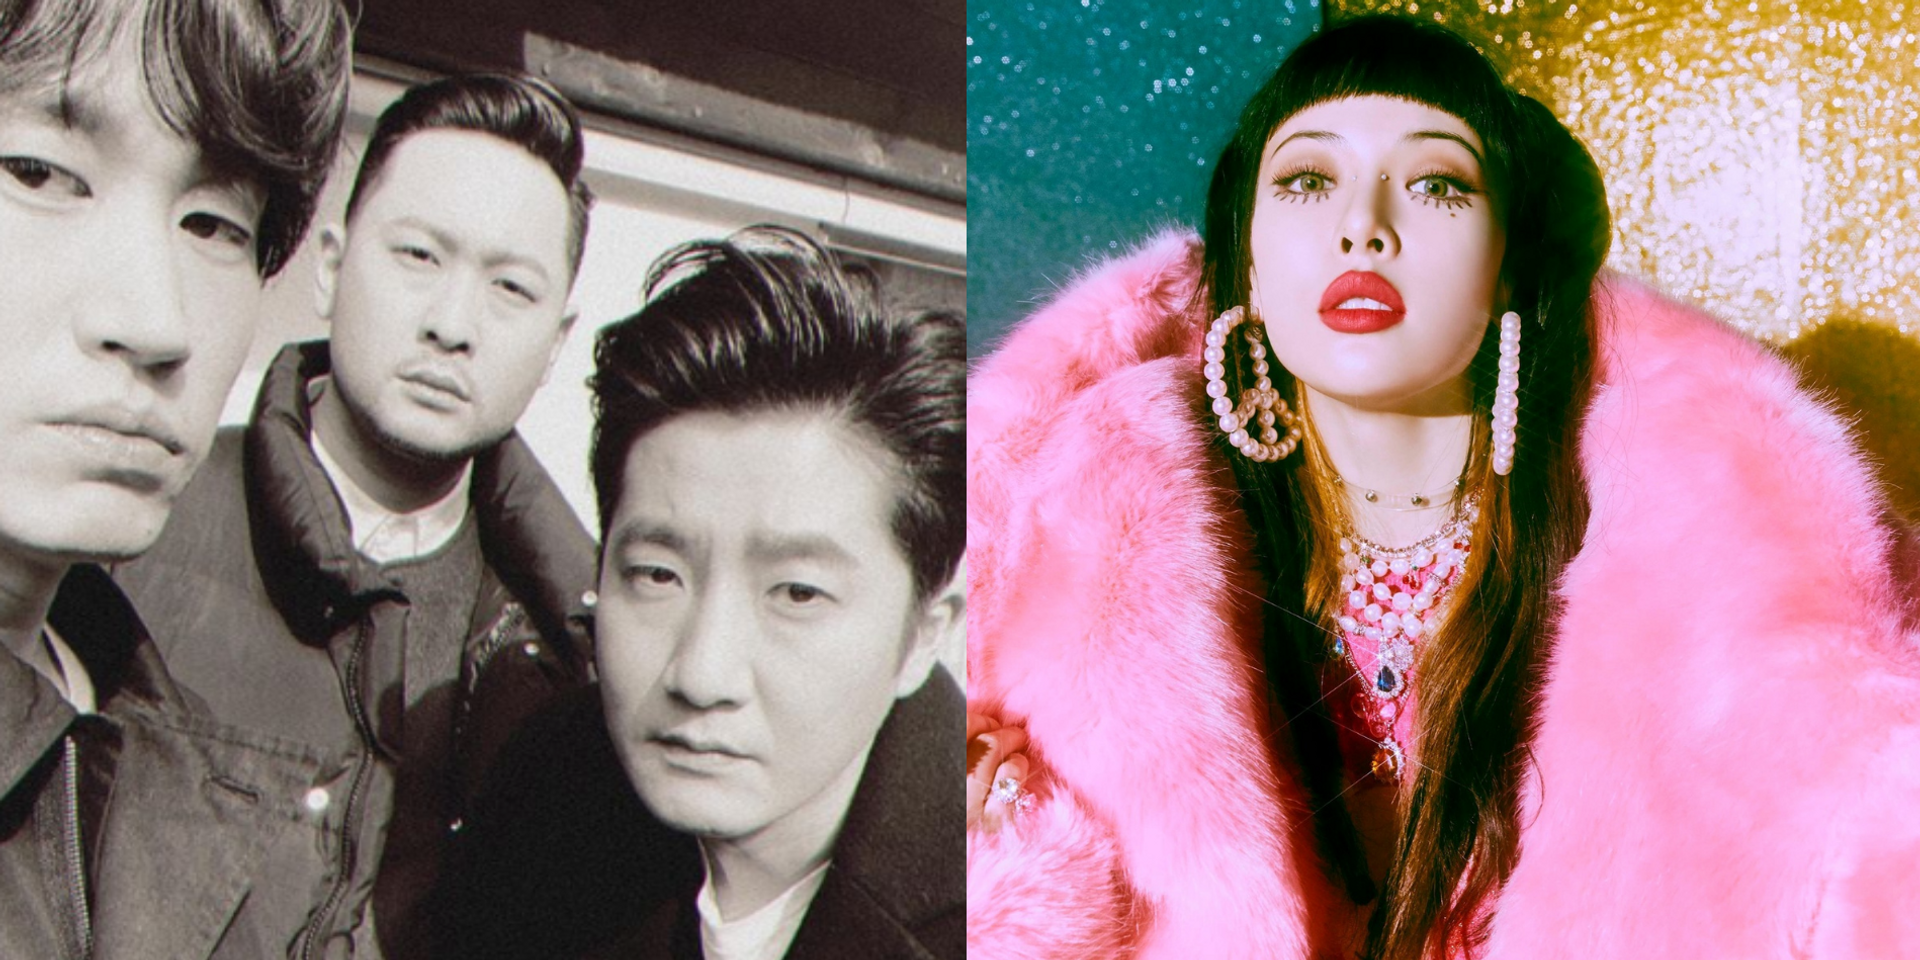 Songs and albums by Epik High, HyunA, IU, and more return to Spotify